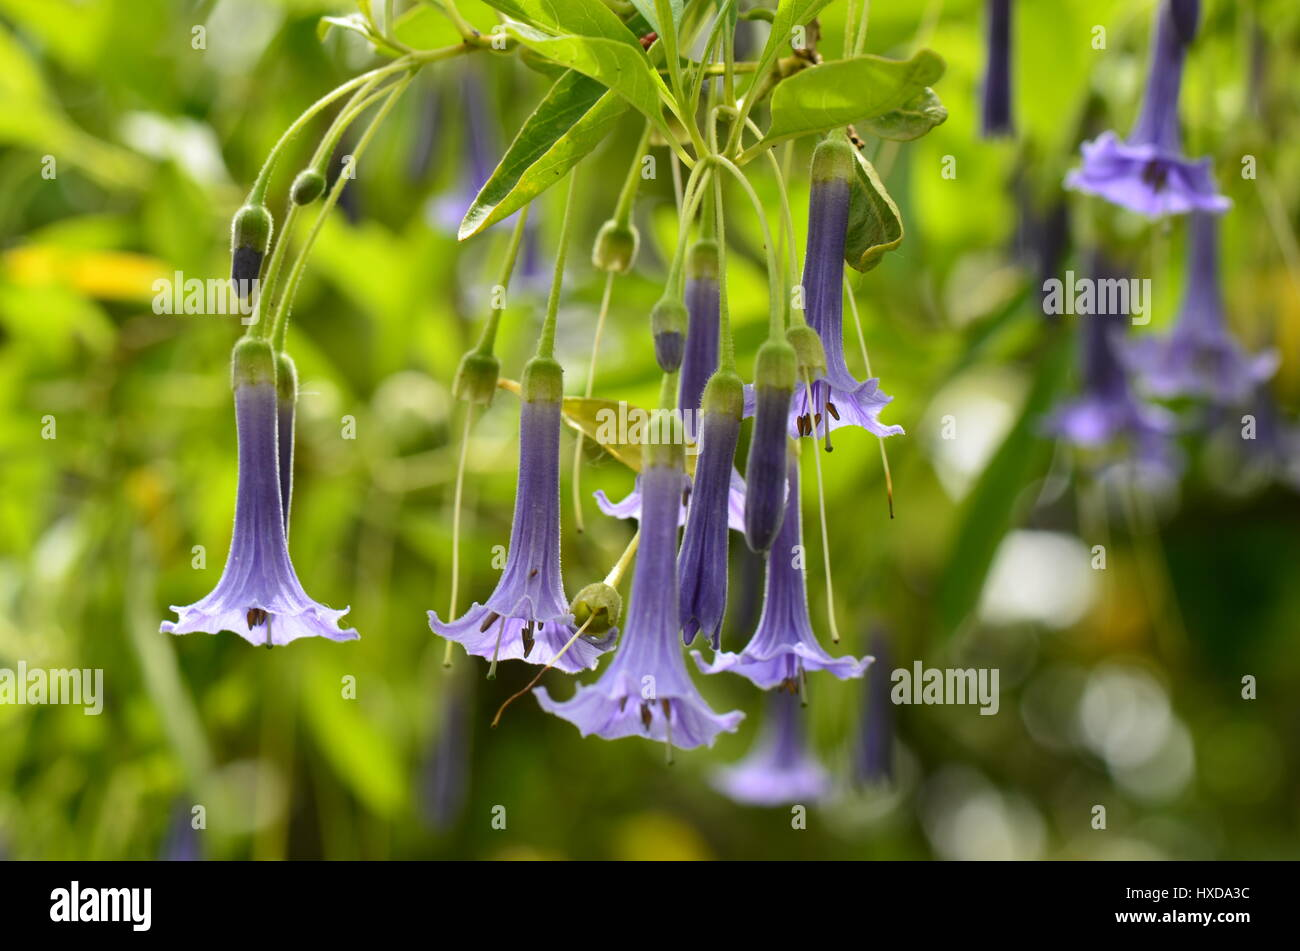 Purple bell flowers on green stock photos purple bell flowers on purple bell flowers on green background stock image mightylinksfo